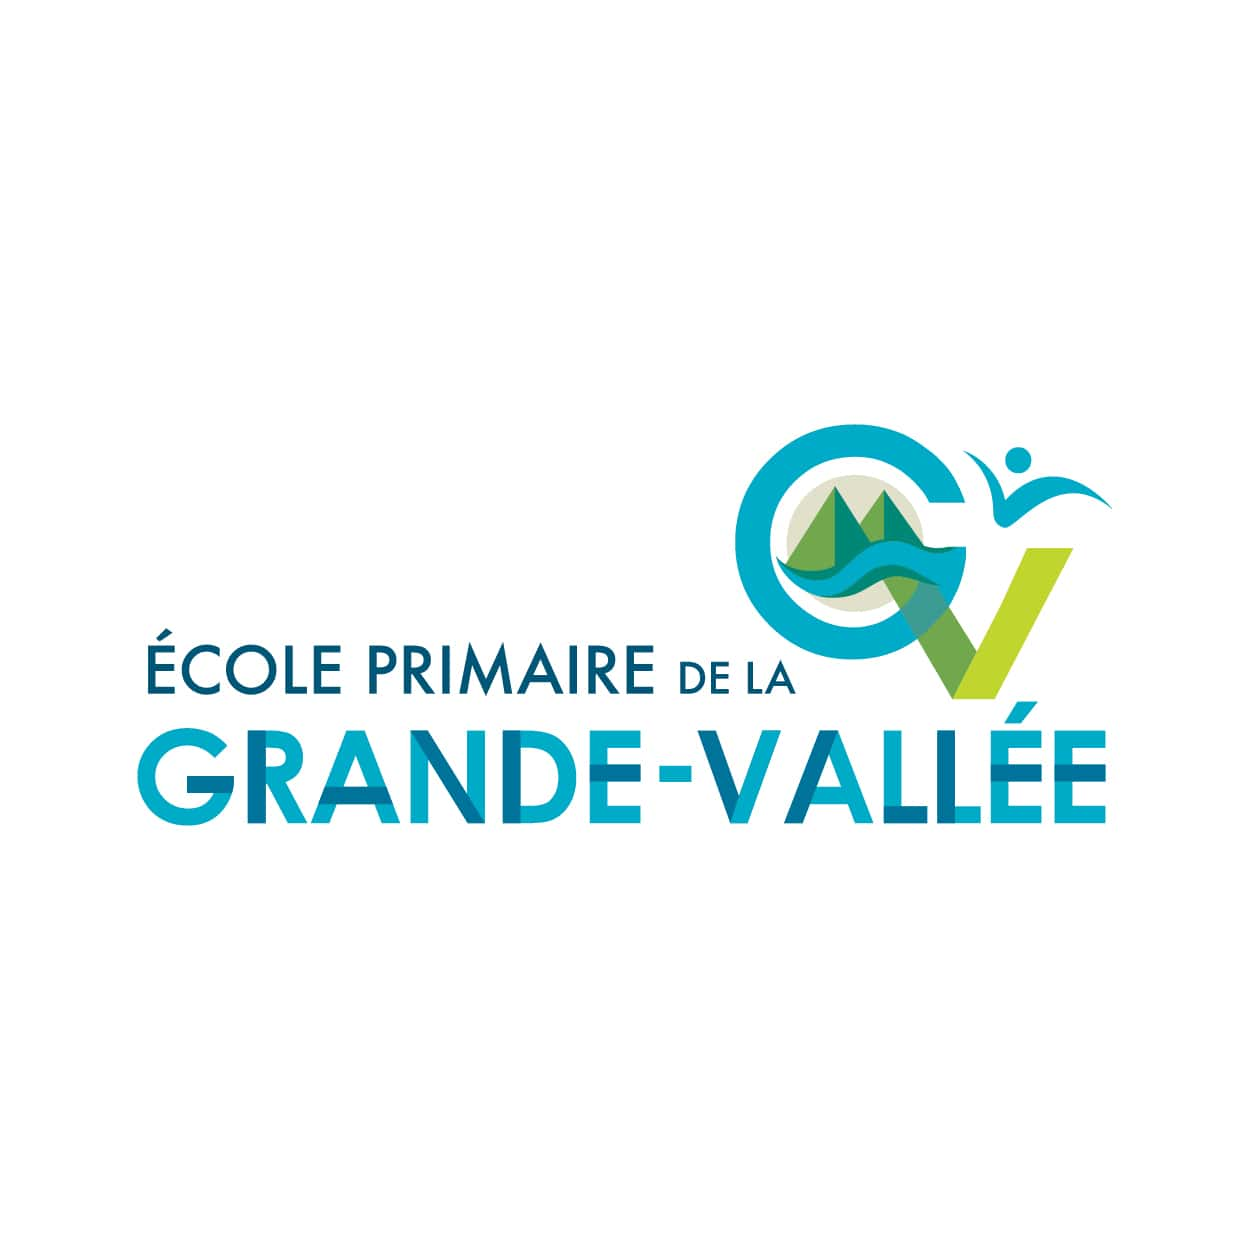 Grande-Vallée Primary school